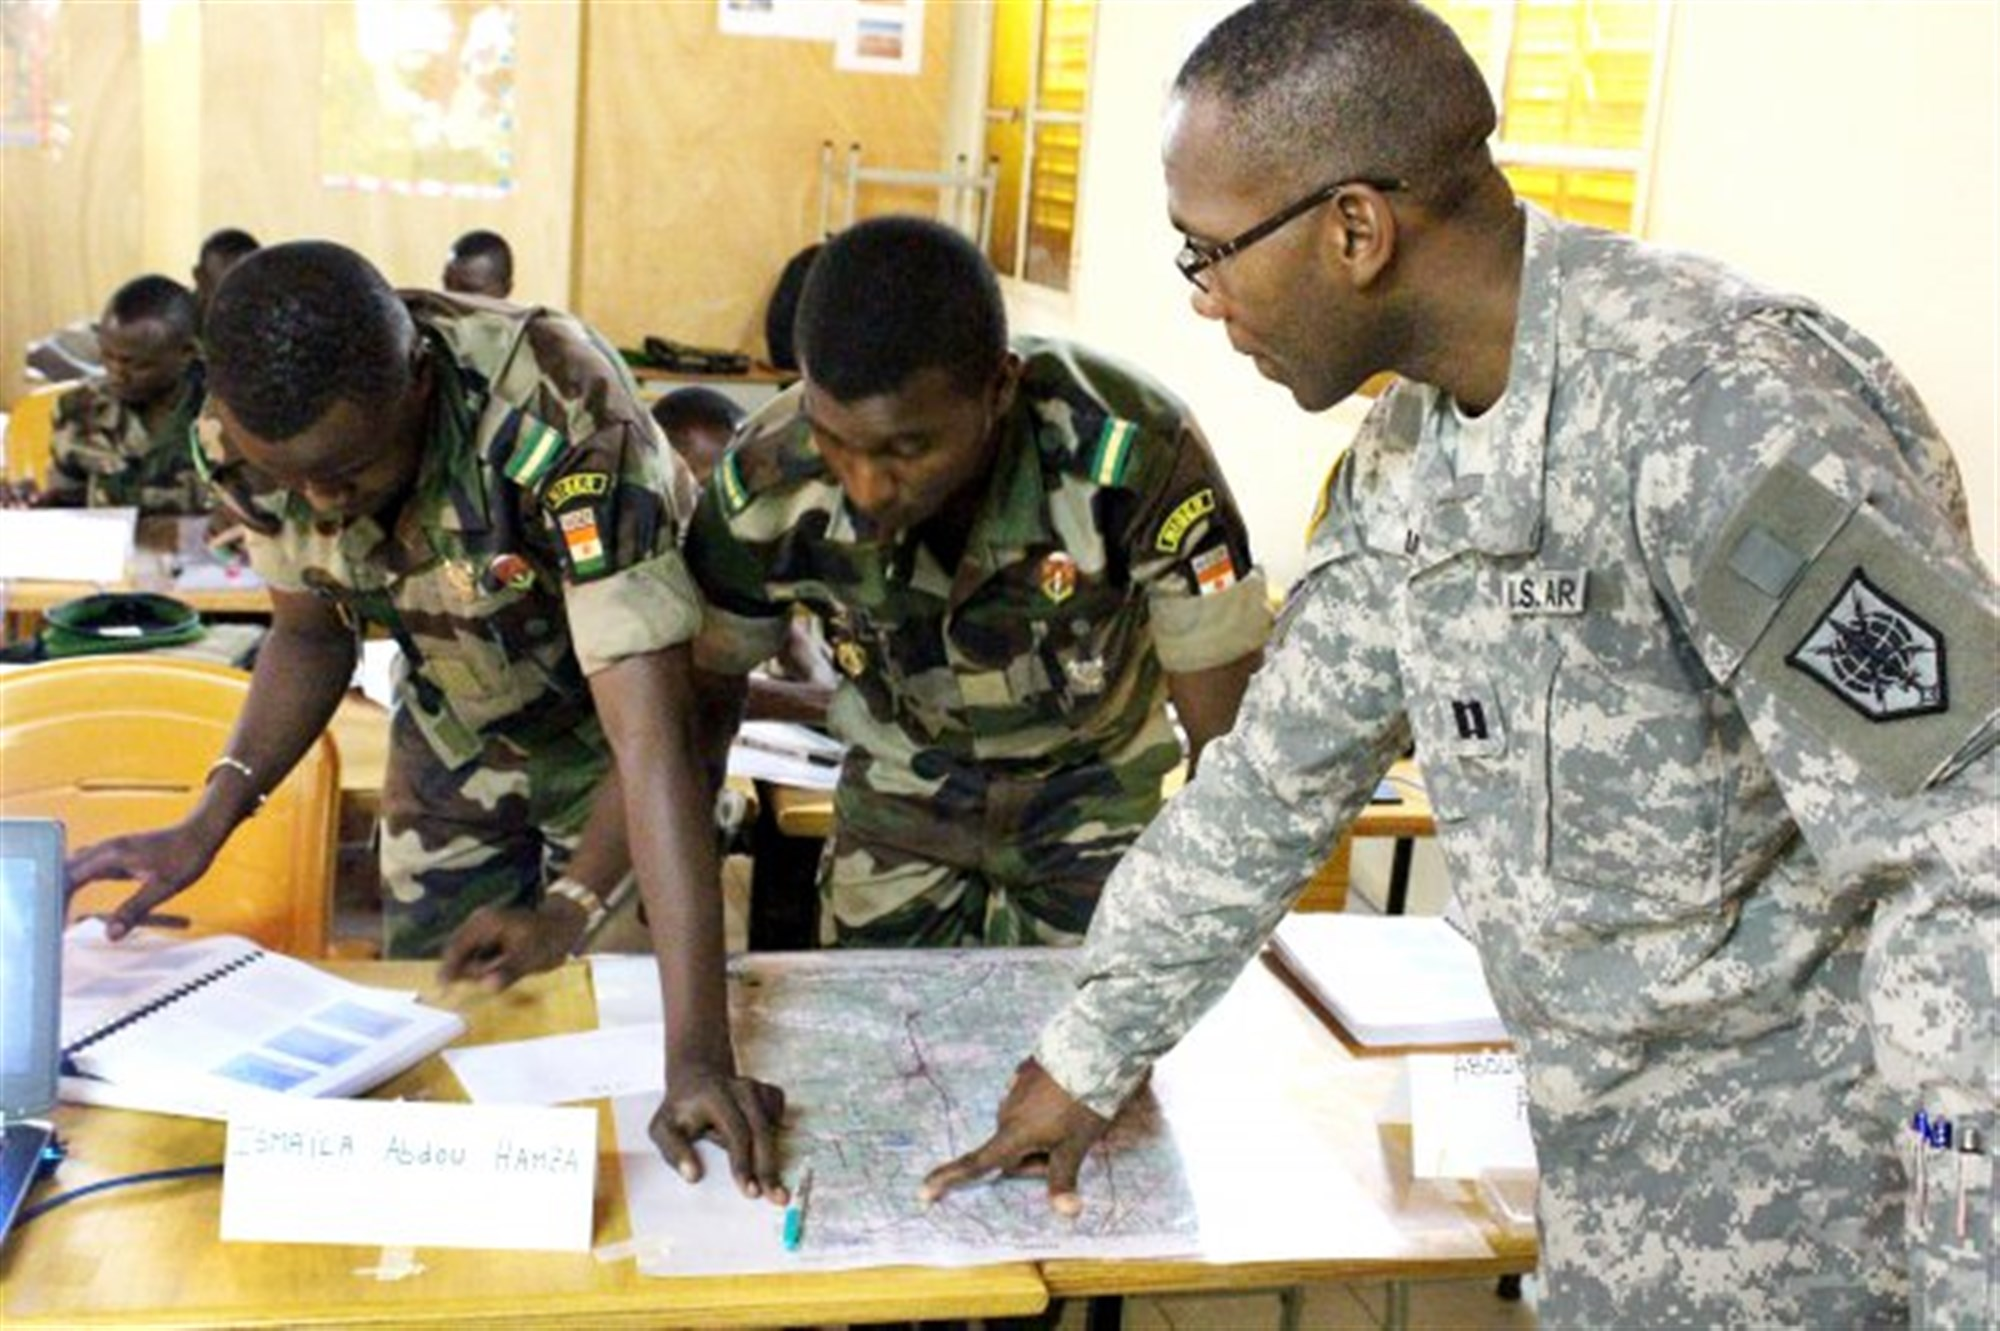 Nigerien Army Lieutenants Ismaila Abdou Hamza and Aboubacar Anadon and U.S. Army Capt. Dominique Louis plot targets for analysis during their basic map-reading course in Niamey, Niger, Oct. 28, 2015.